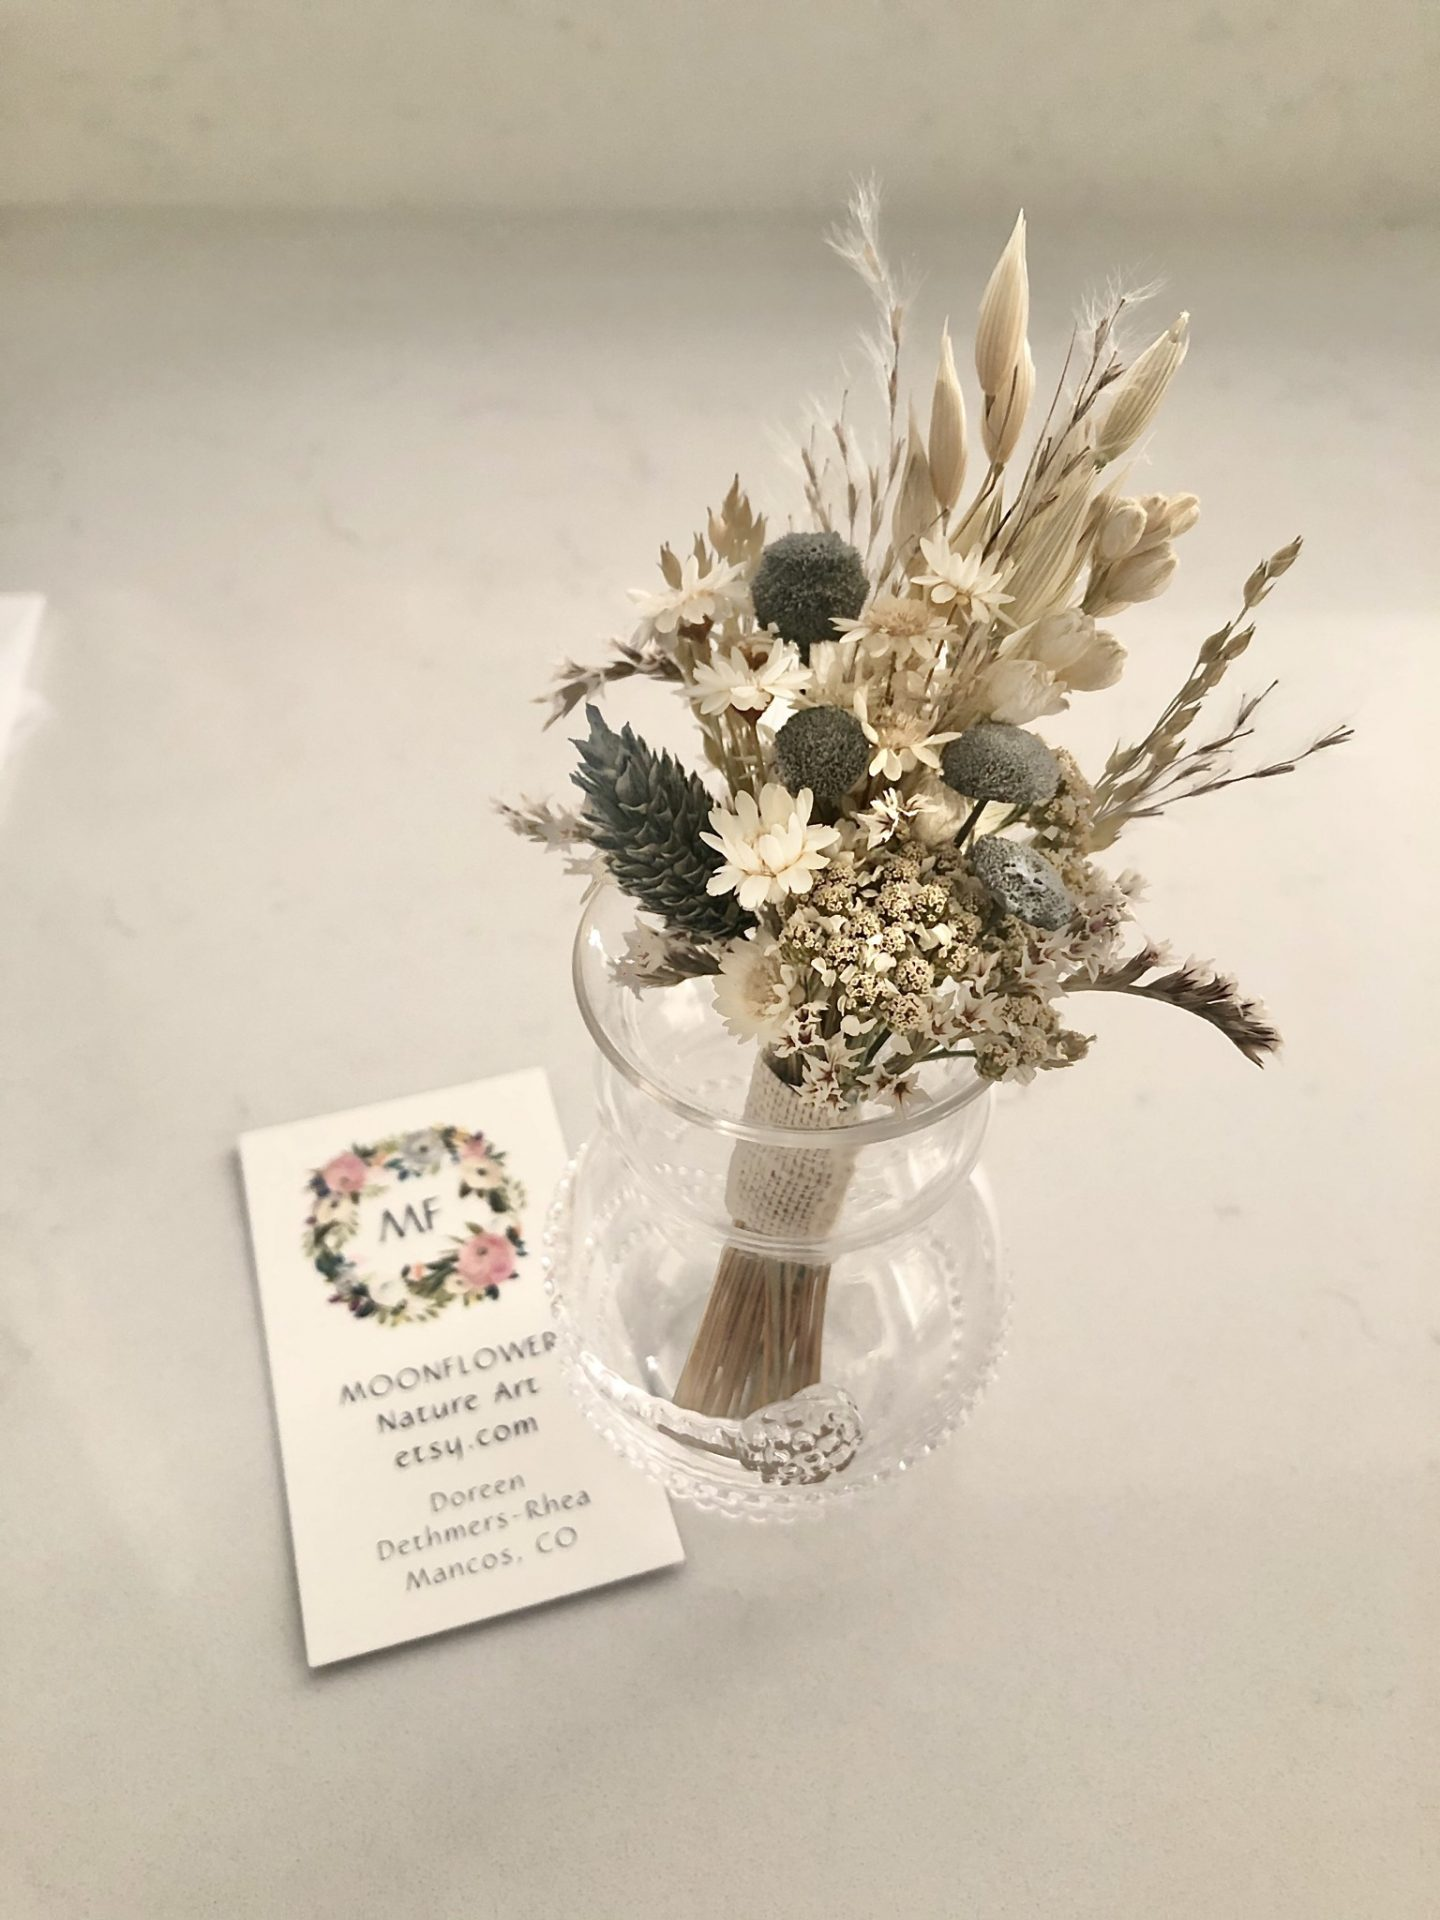 Rustic Neutral Dried Flower Boutonniere from Moonflower Nature Art in a Juliska bud vase